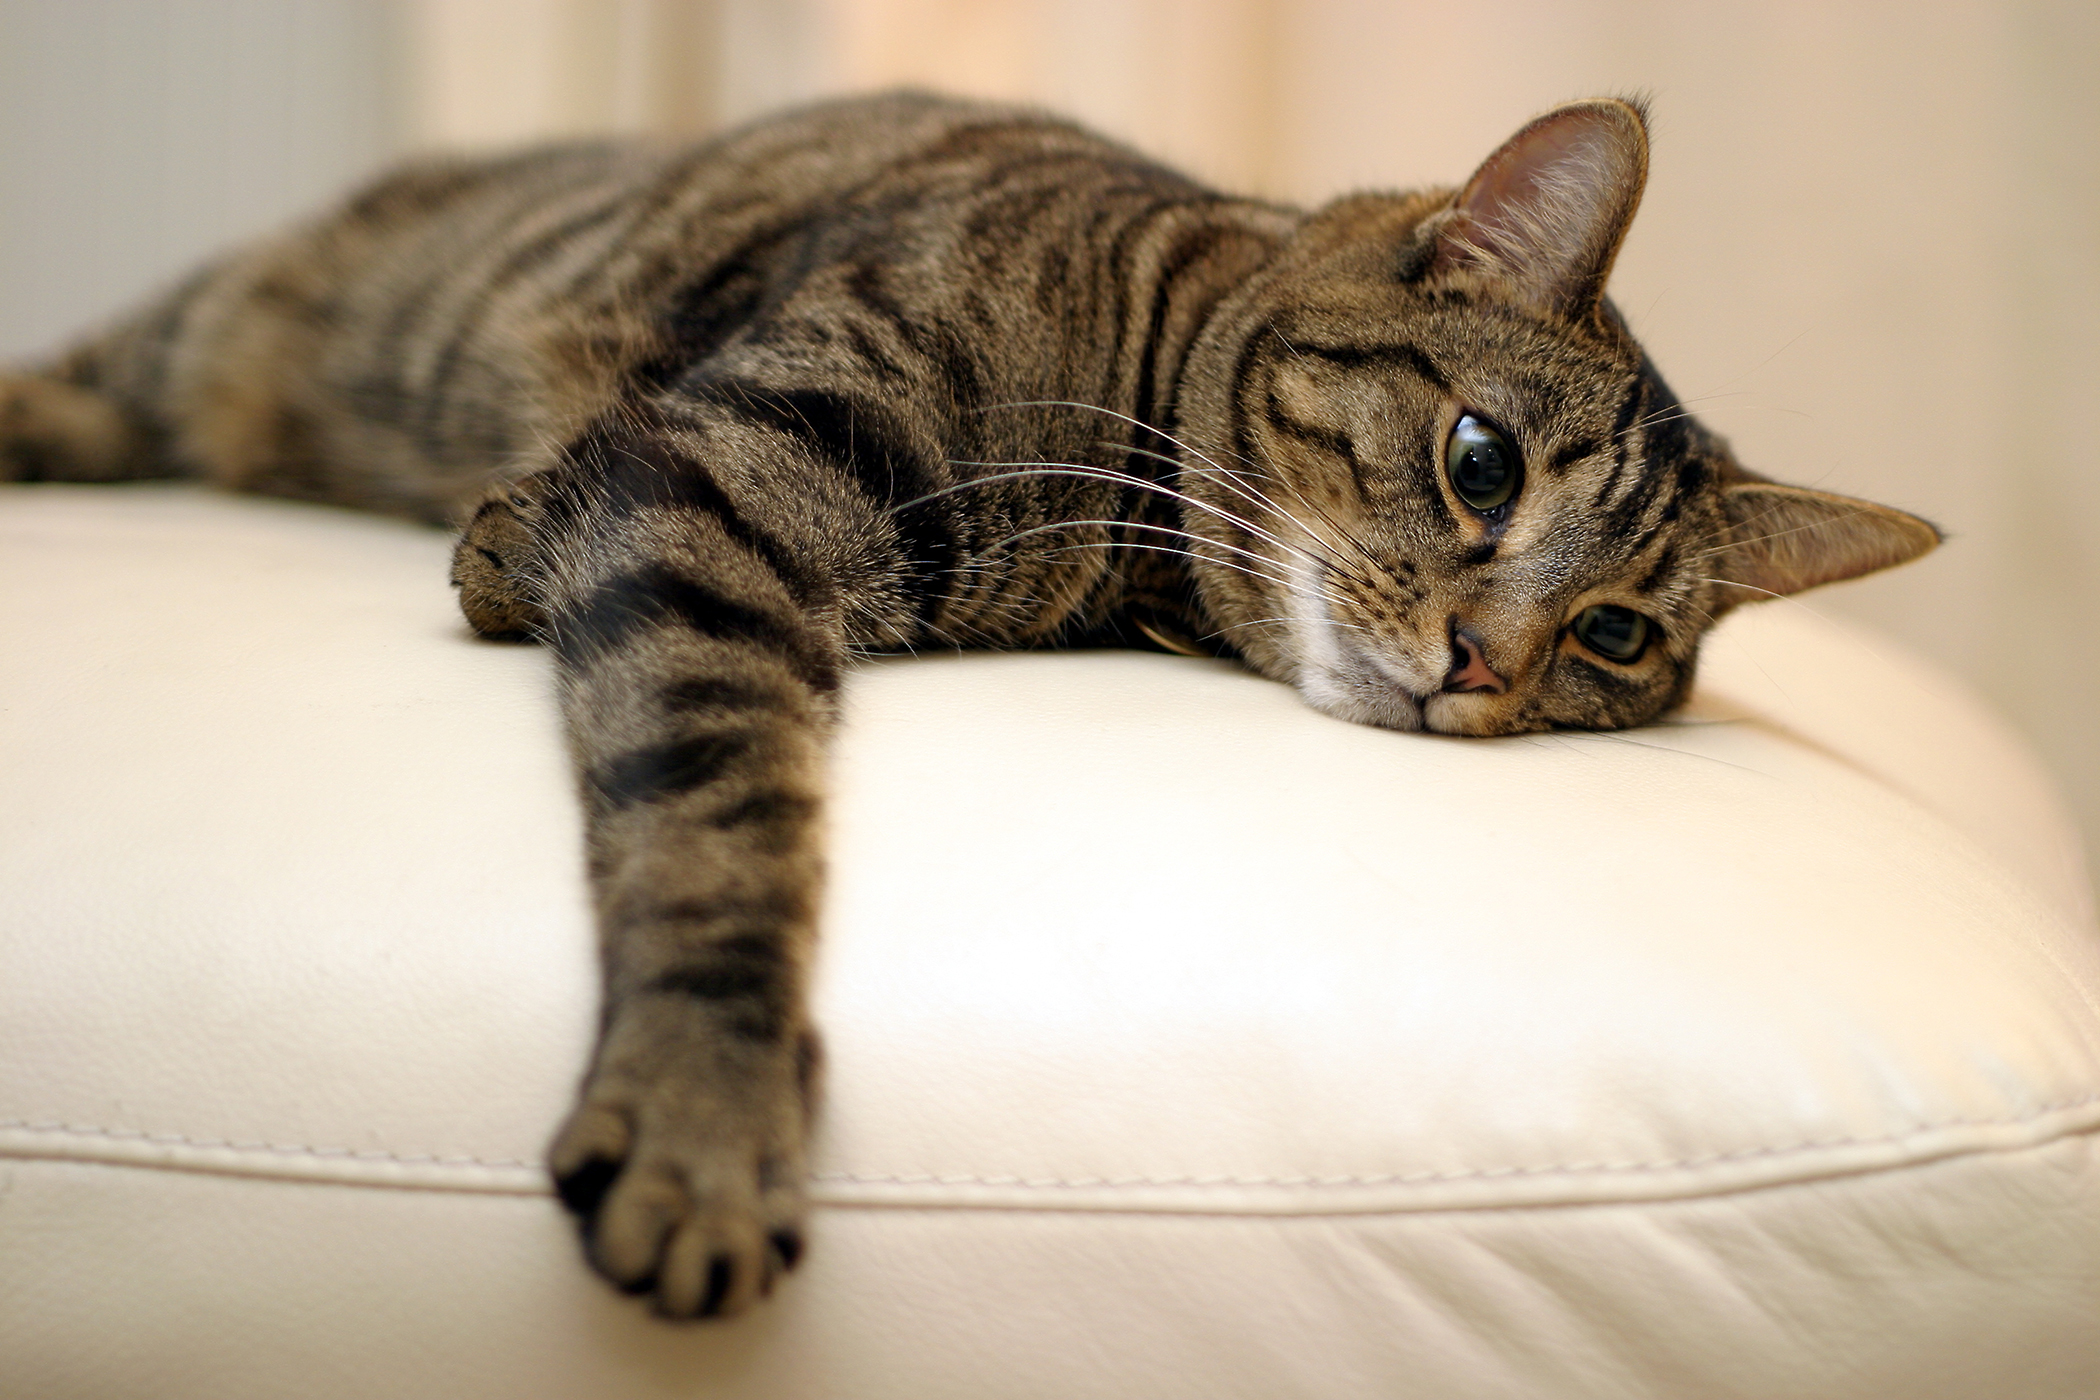 Cystic Endometrial Hyperplasia in Cats